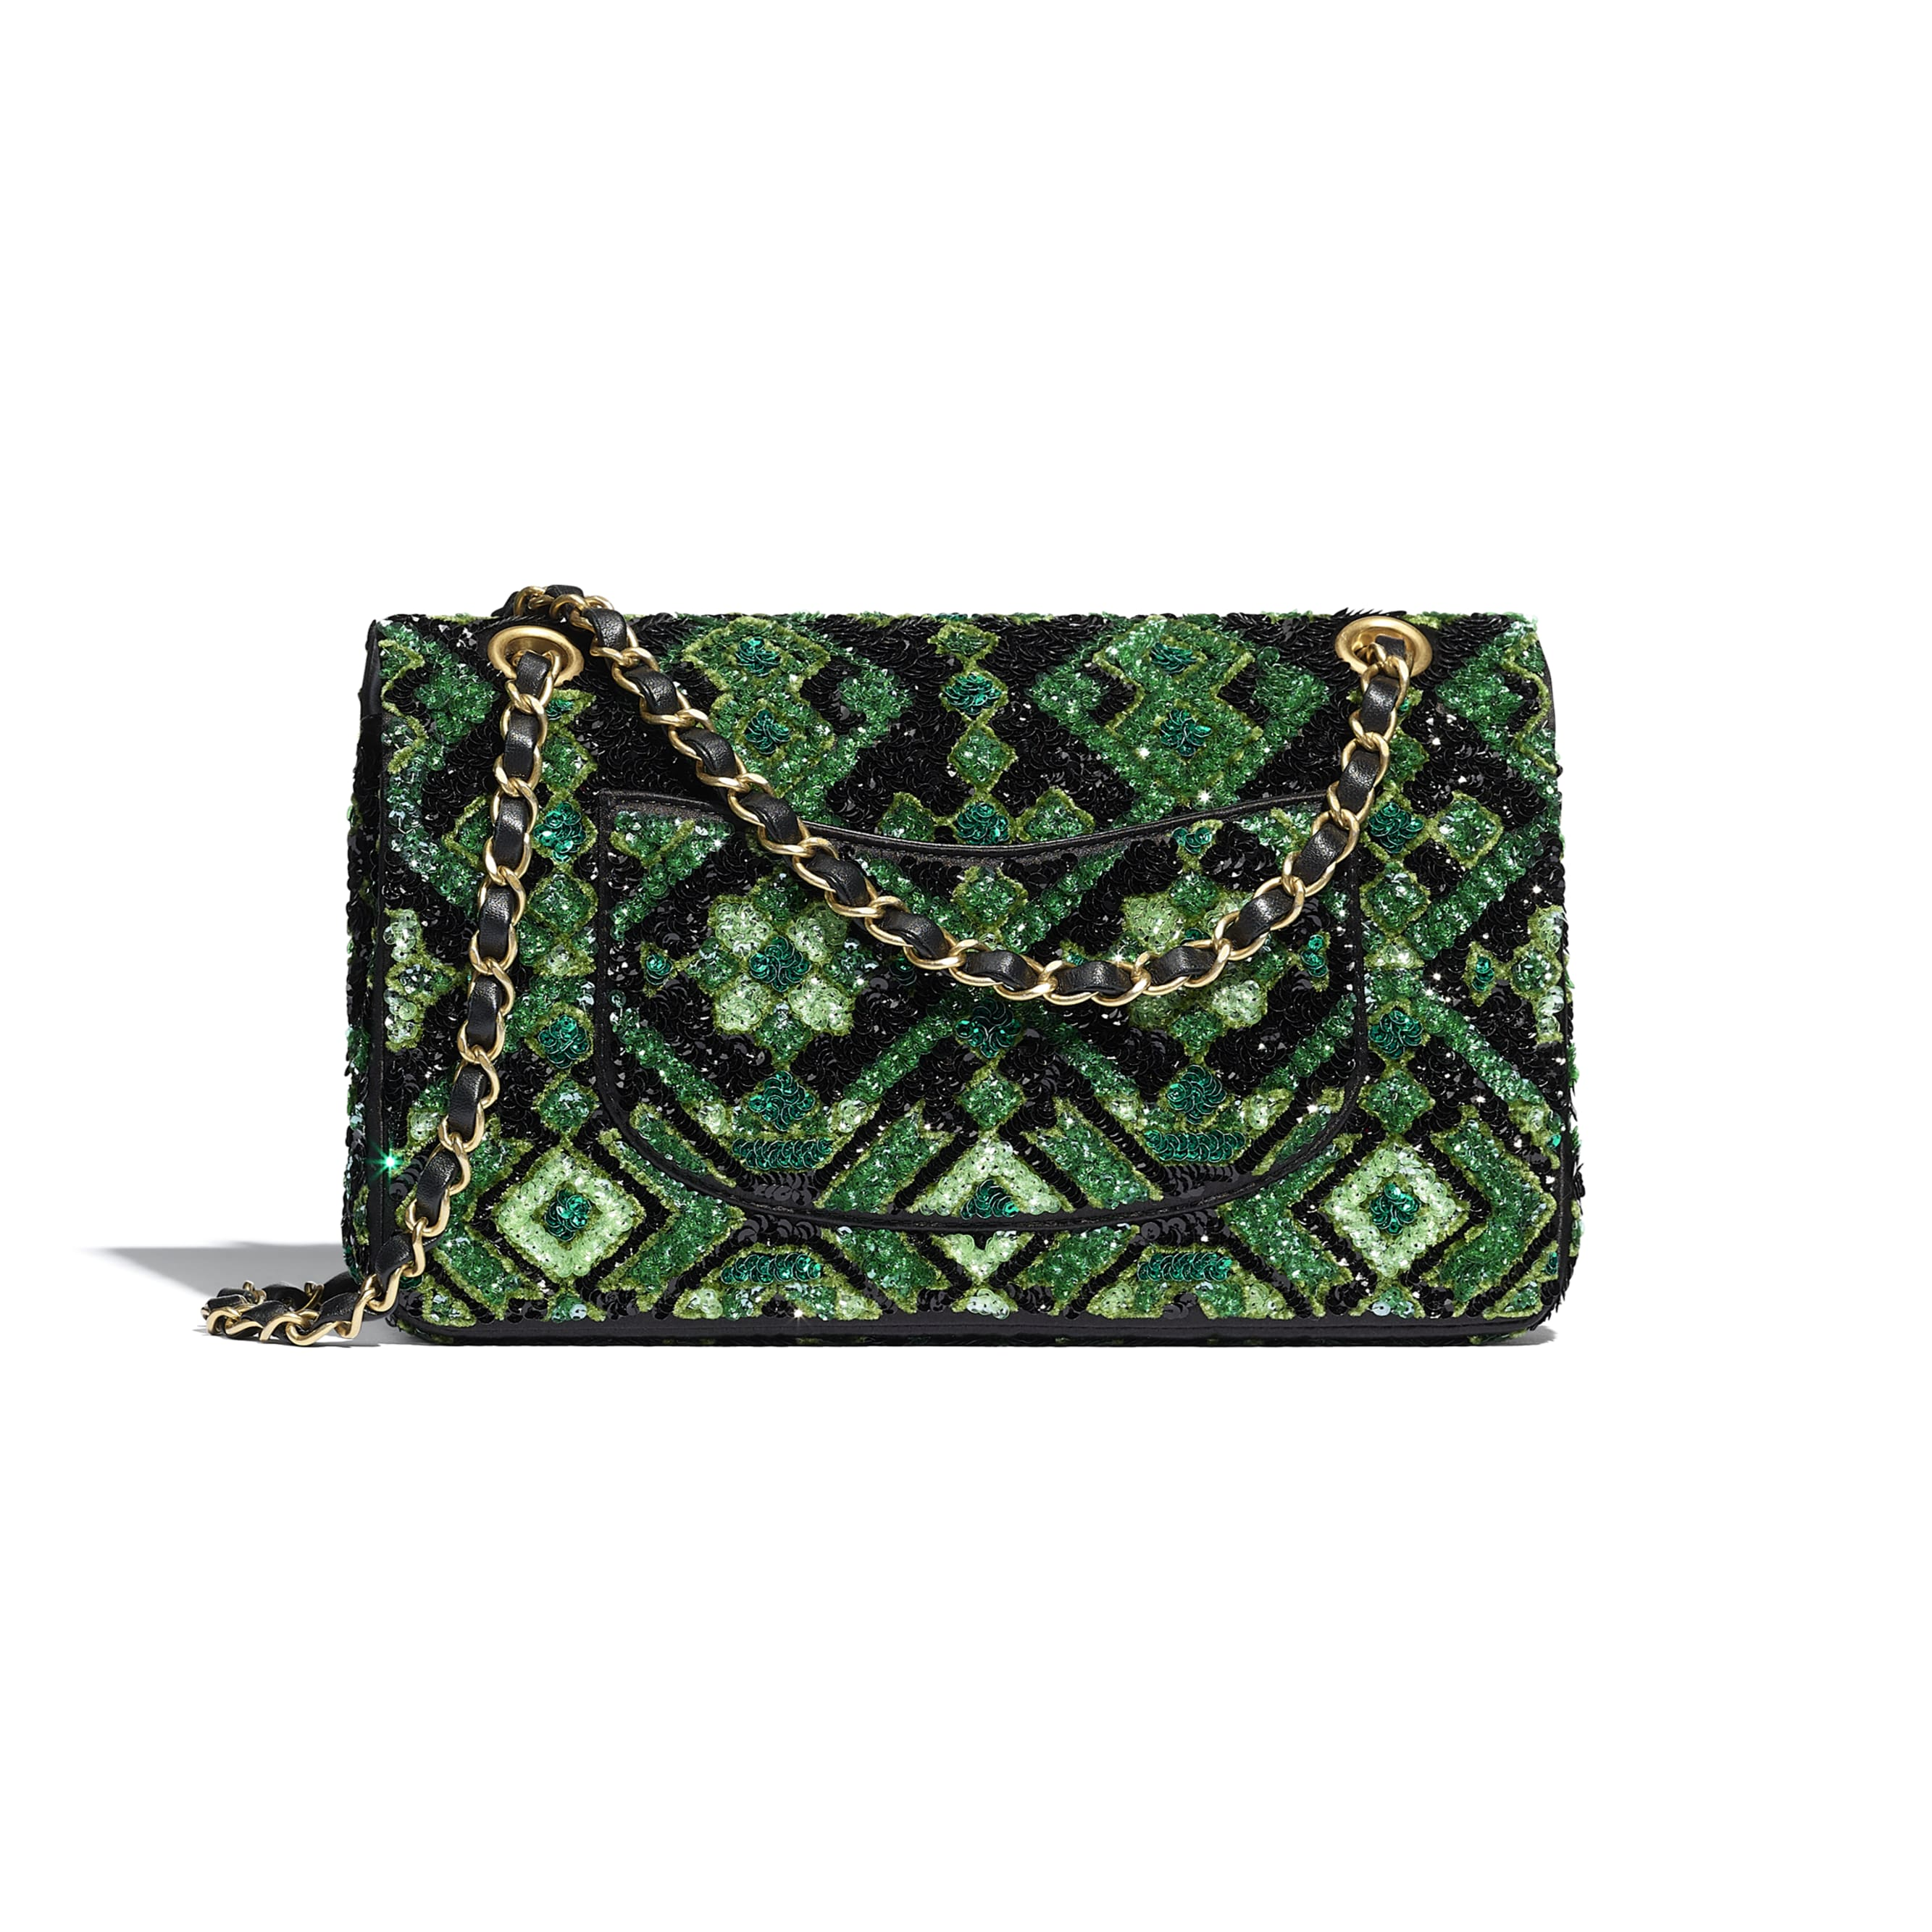 Classic Handbag - Green & Black - Sequins & Gold-Tone Metal - CHANEL - Alternative view - see standard sized version